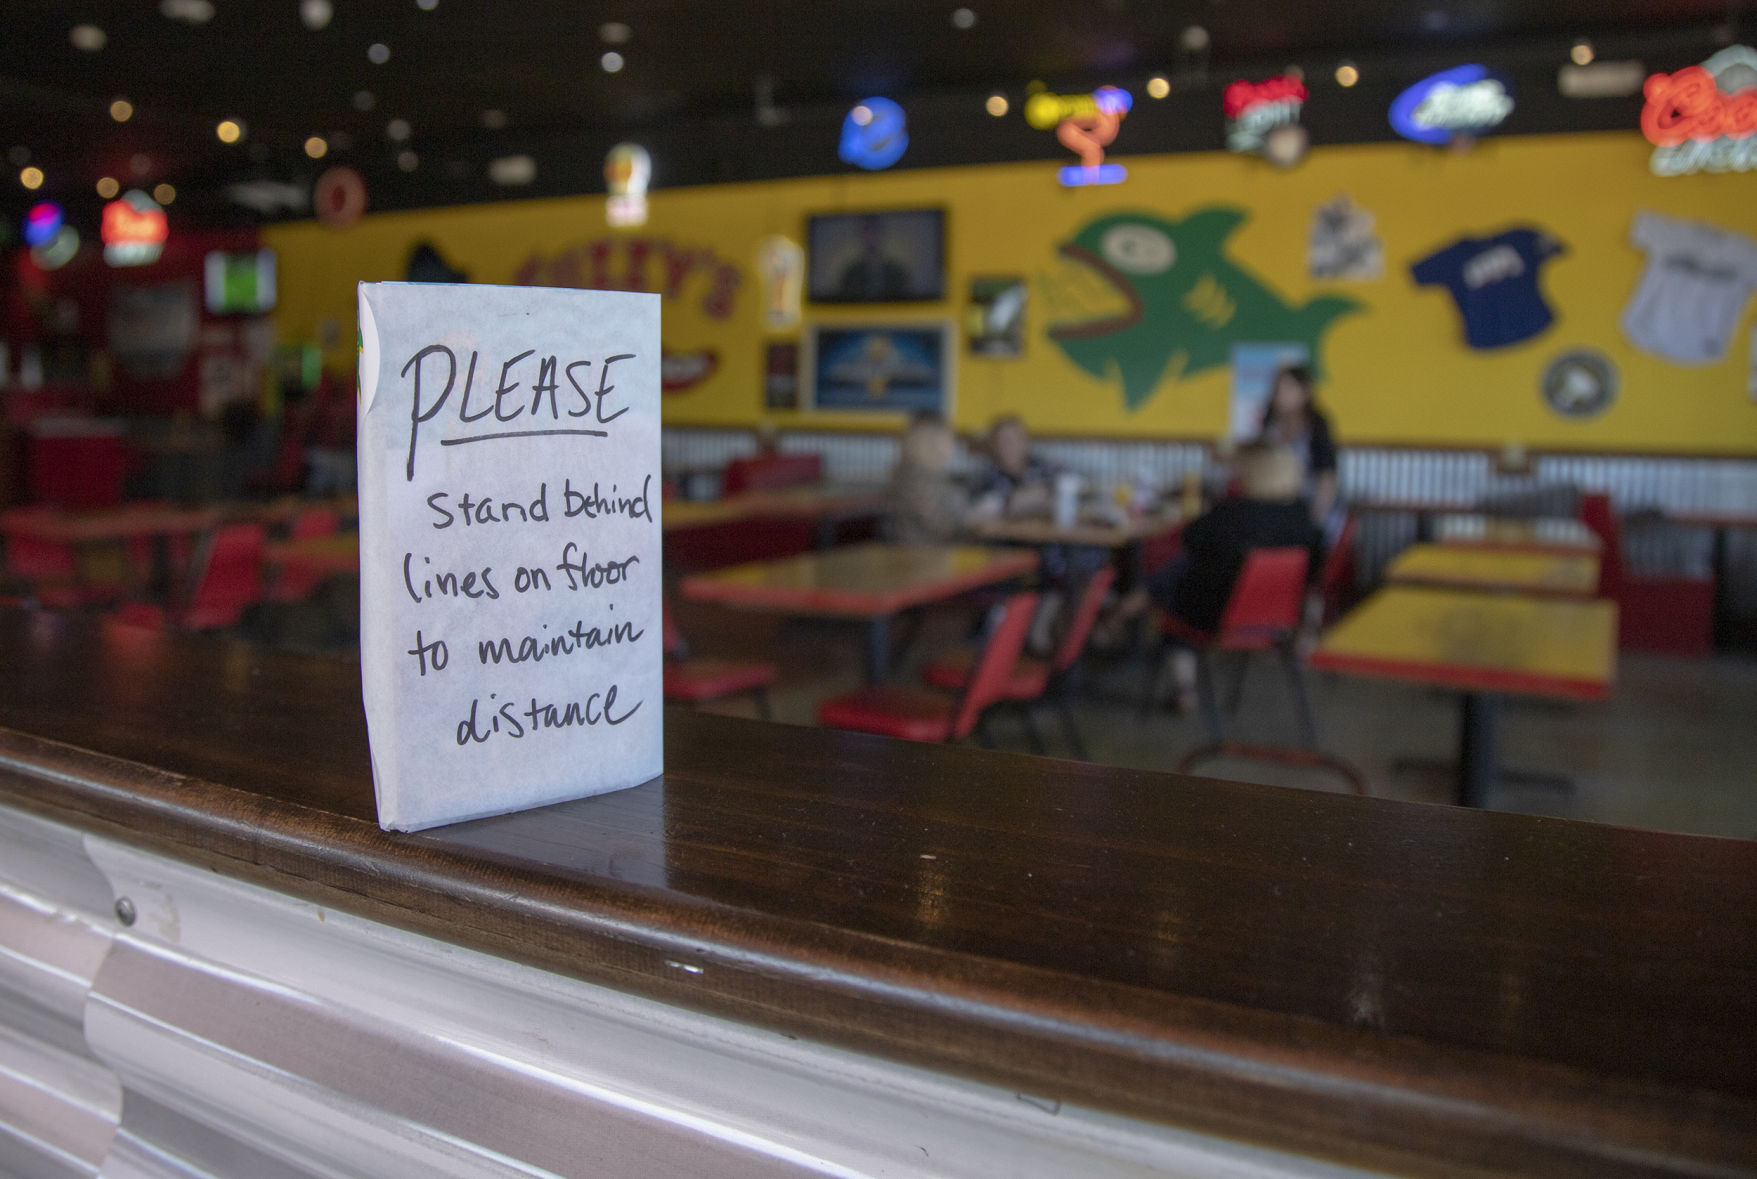 After over a month of self-isolation, Texans react to businesses reopening under restrictions